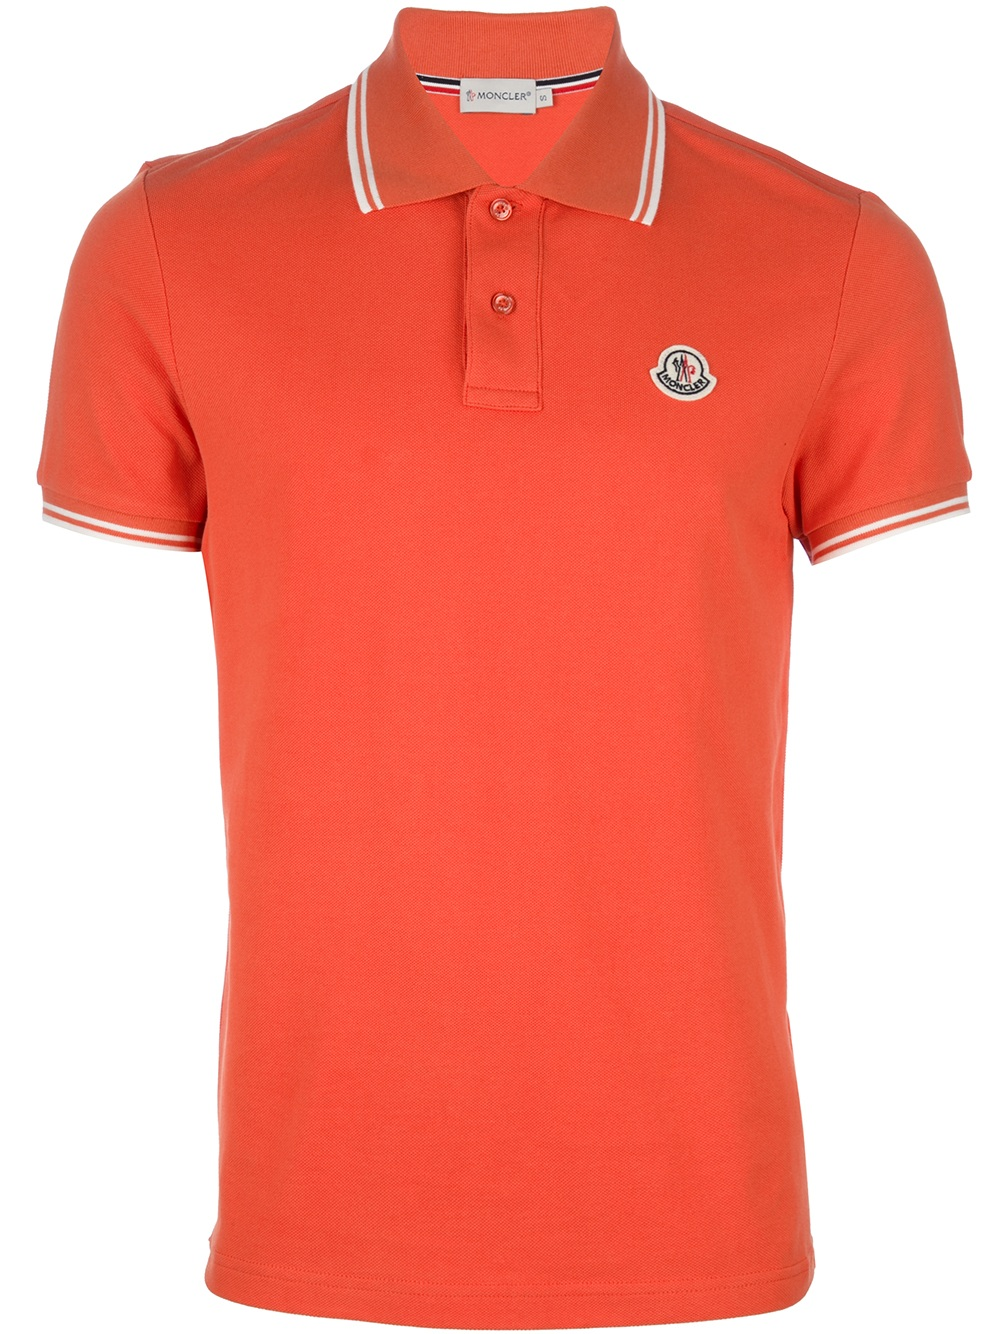 Moncler classic polo shirt in orange for men lyst for Mens orange polo shirt